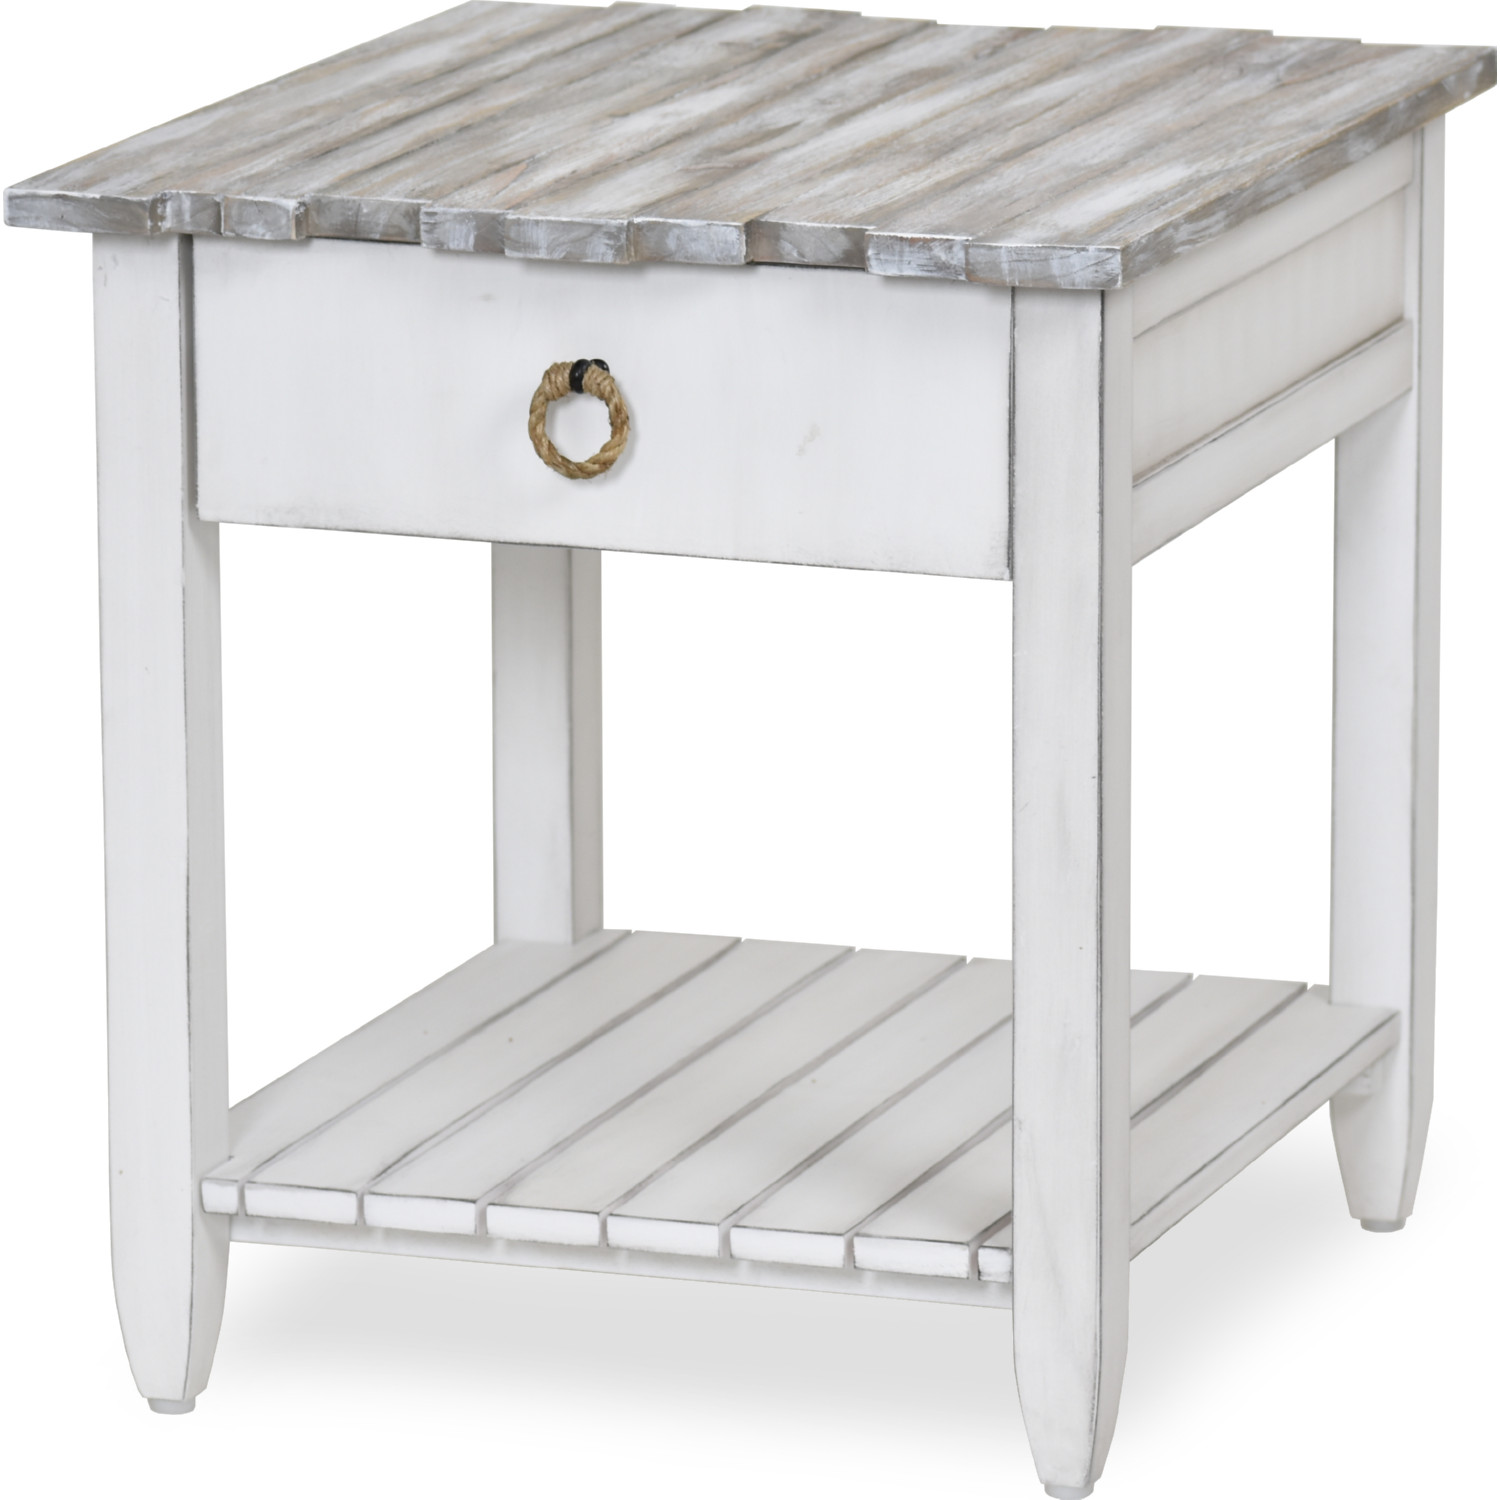 Picket Fence End Table In Distressed Grey White By Sea Winds